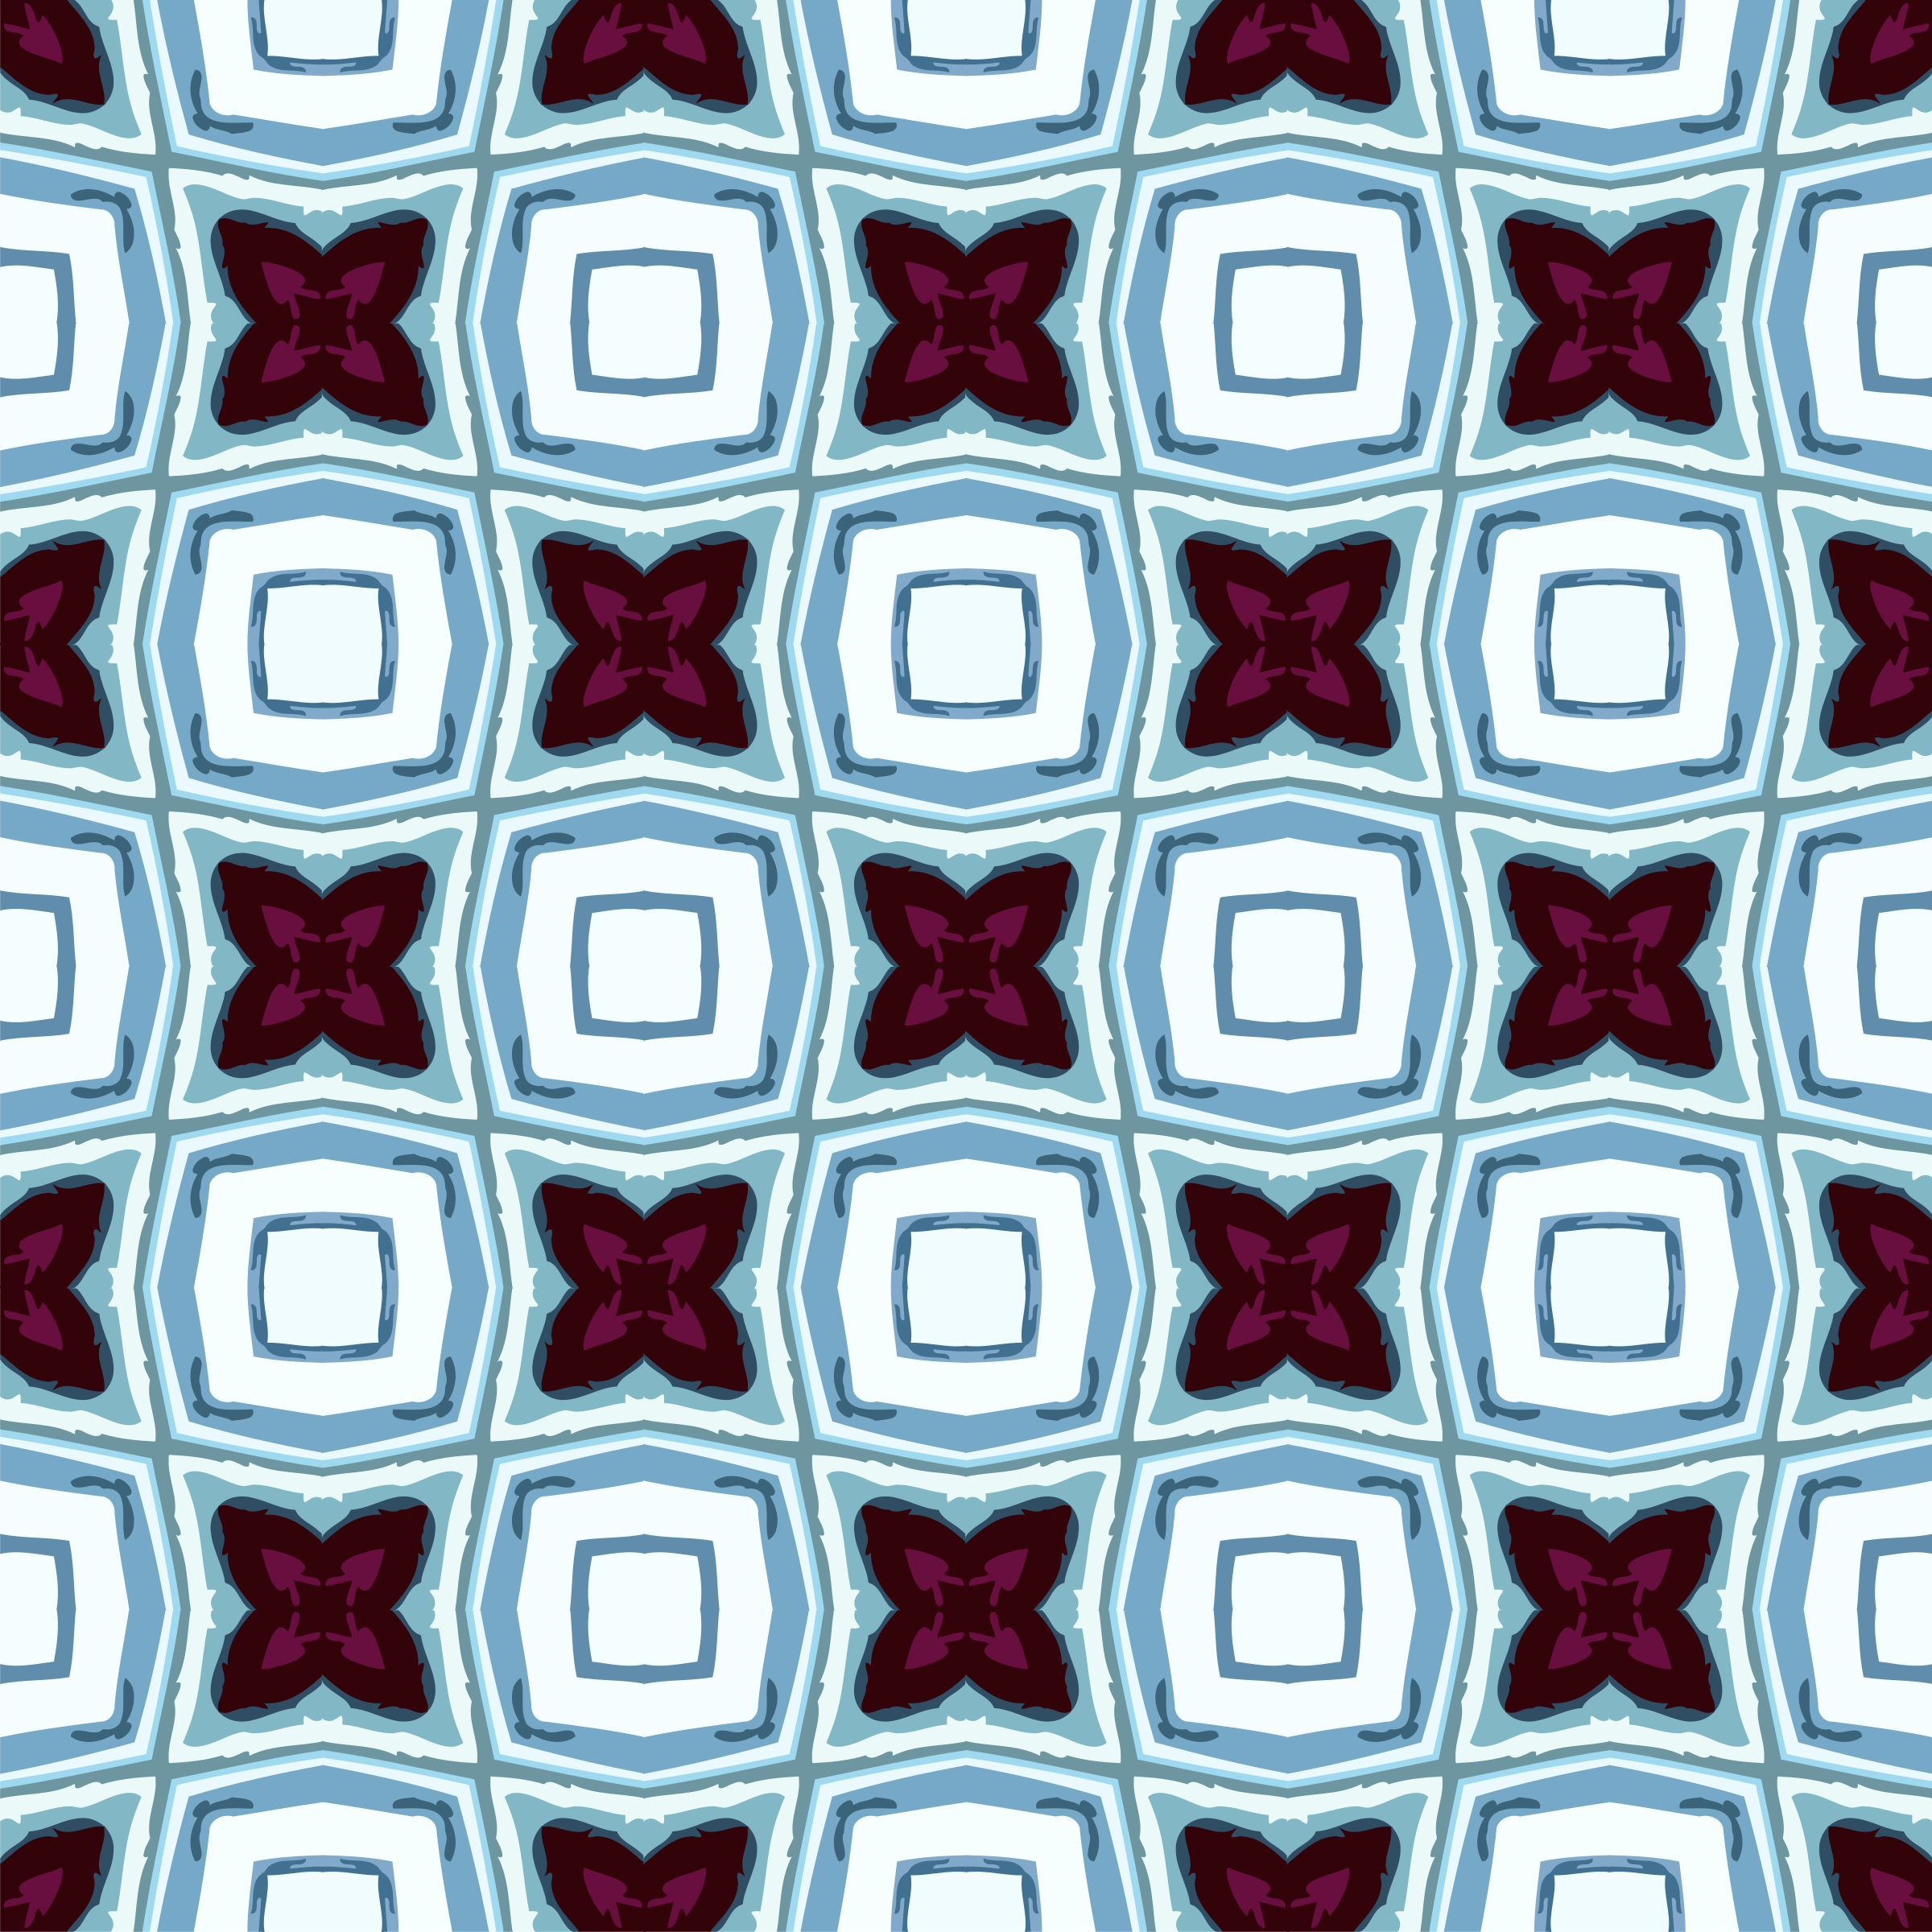 Background pattern 156 (colour 2) by Firkin